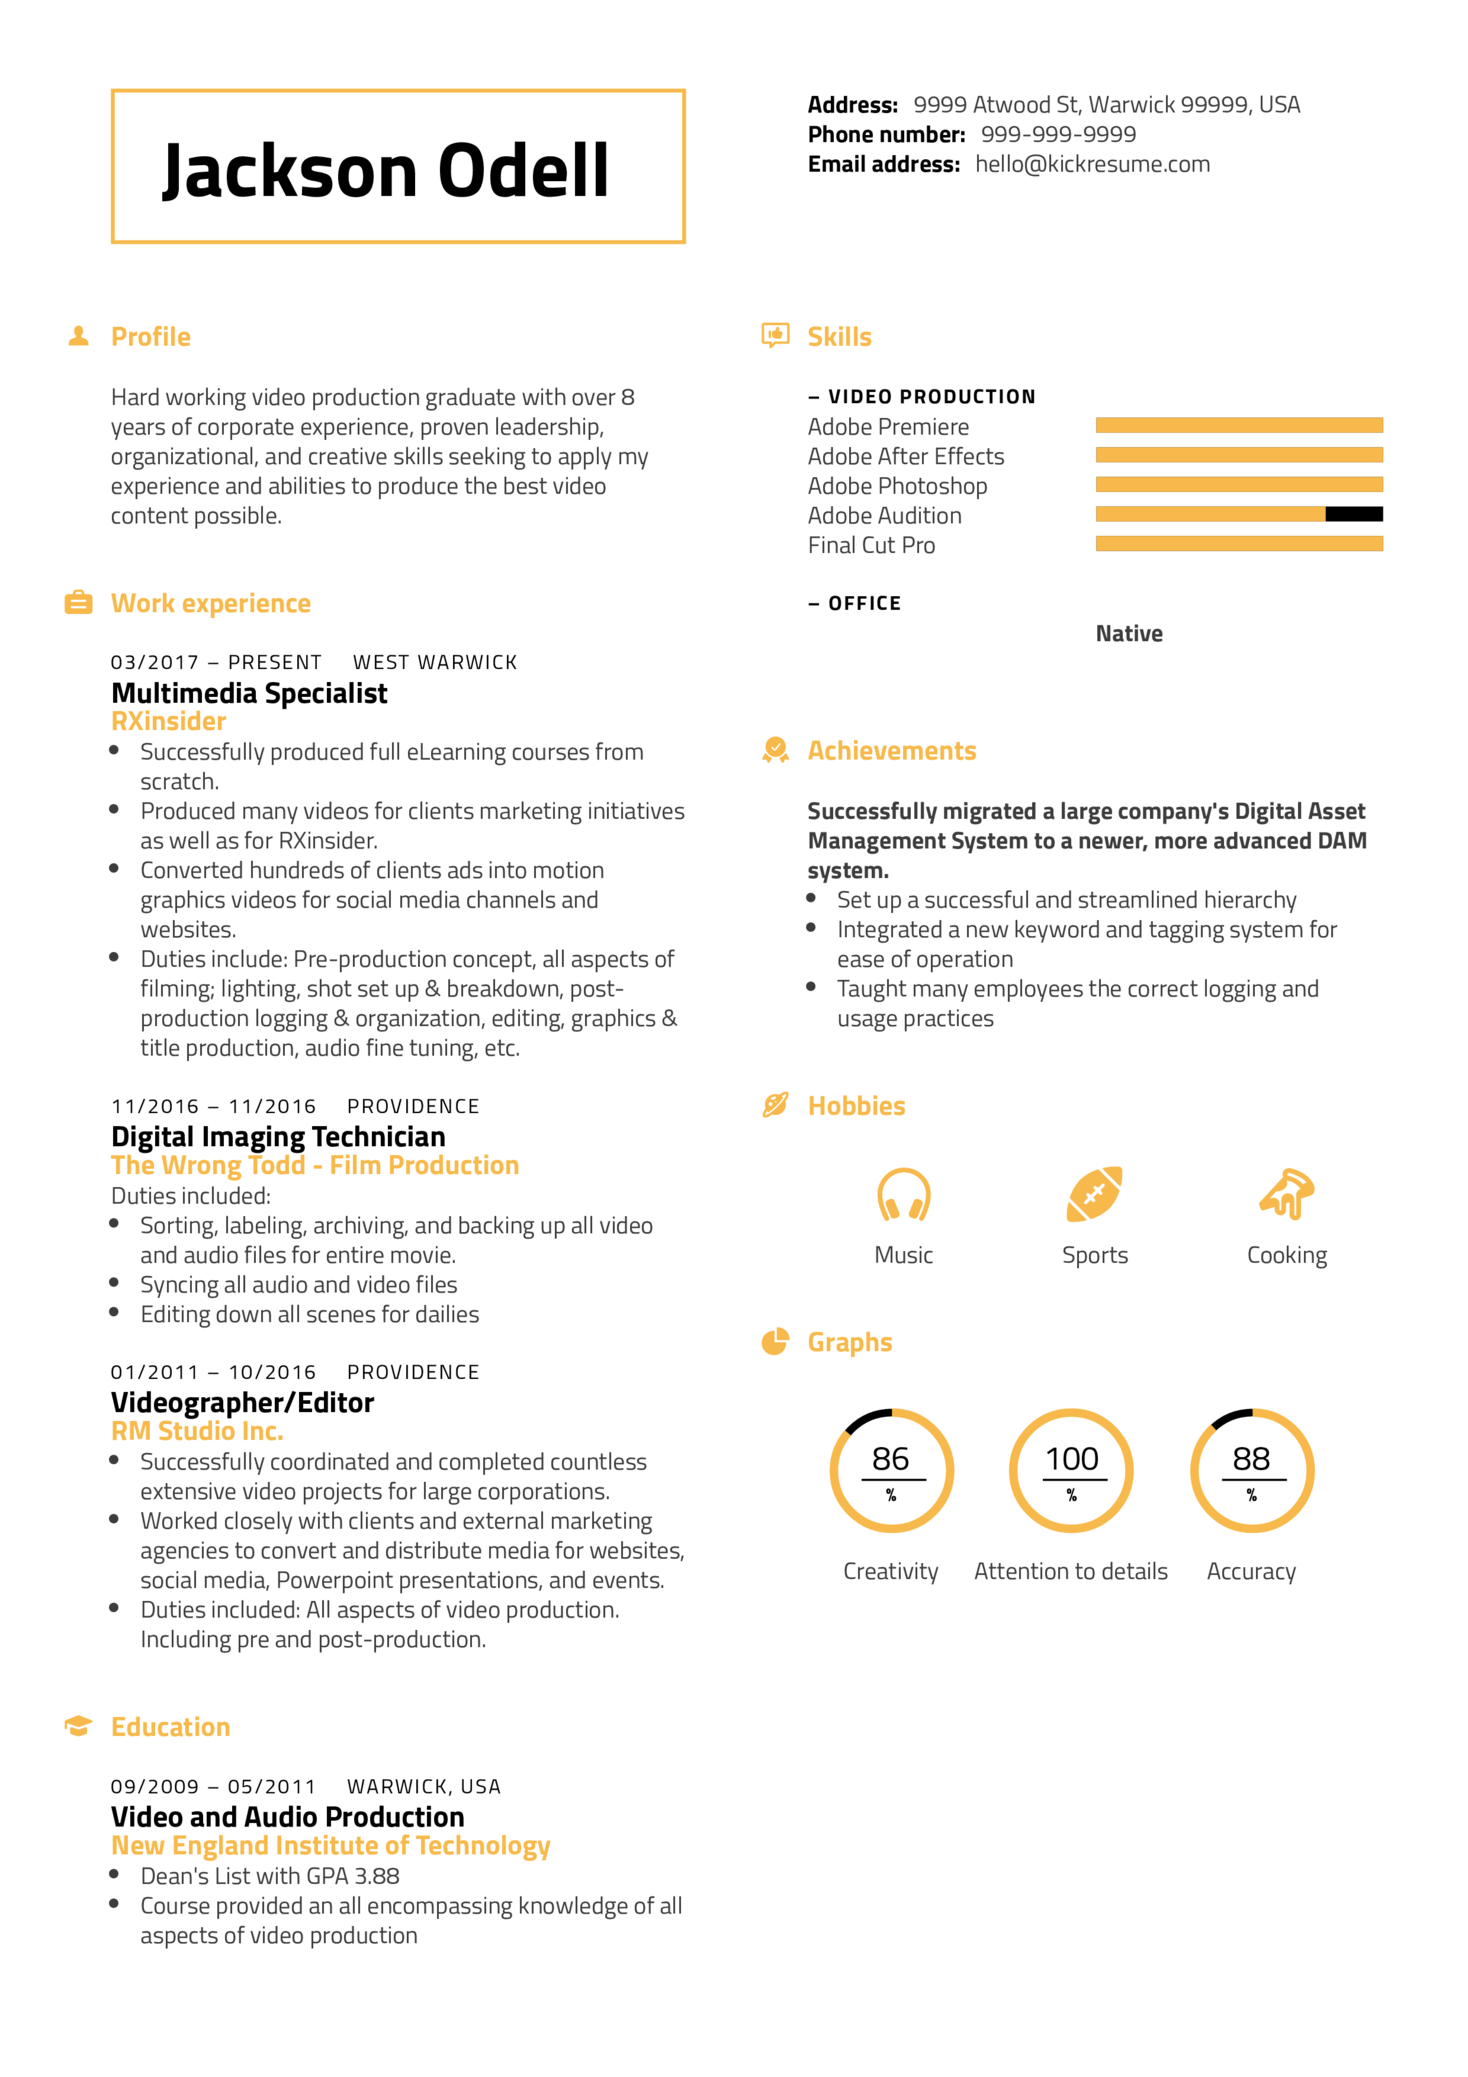 resume examples by real people  rxinsider multimedia